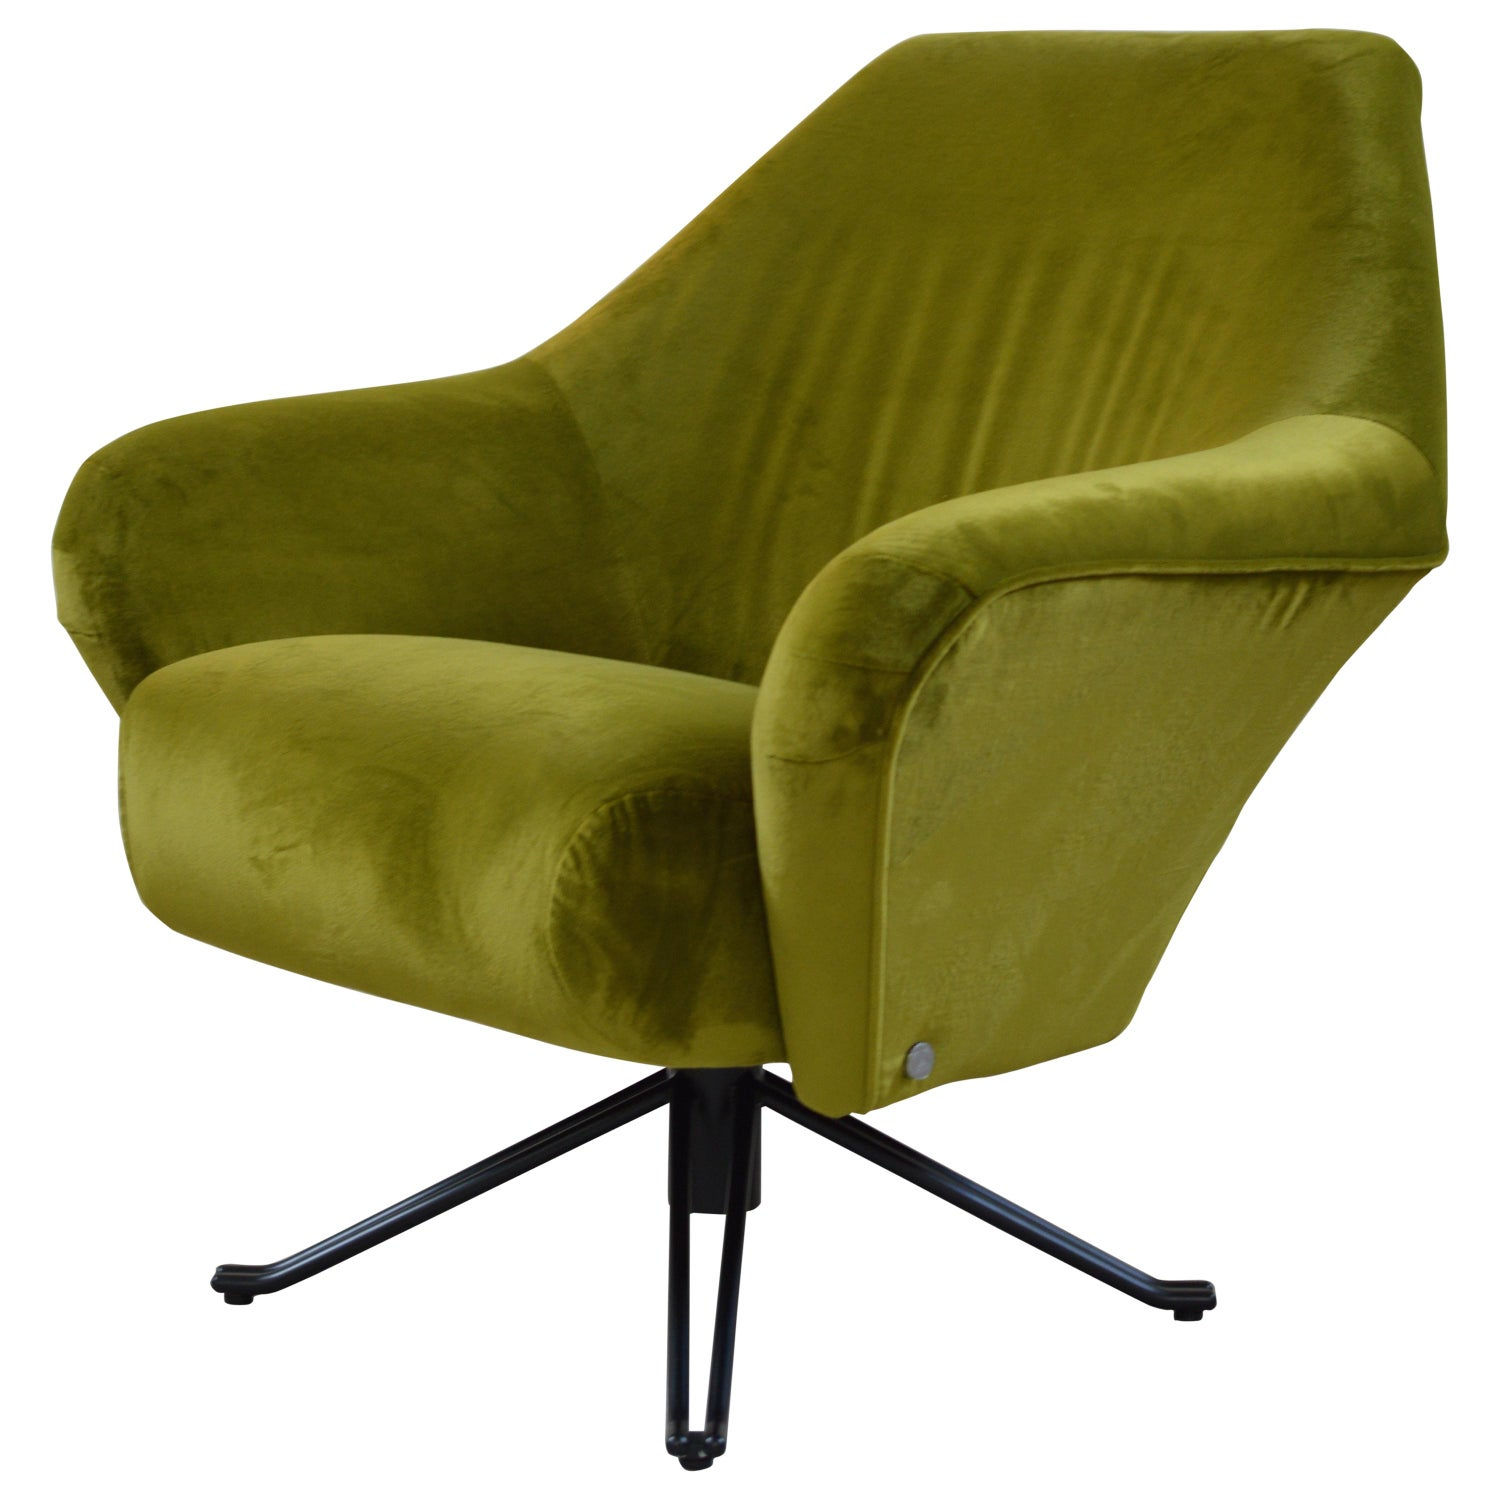 Strange Italian Swivel Chairs 89 For Sale At 1Stdibs Gmtry Best Dining Table And Chair Ideas Images Gmtryco